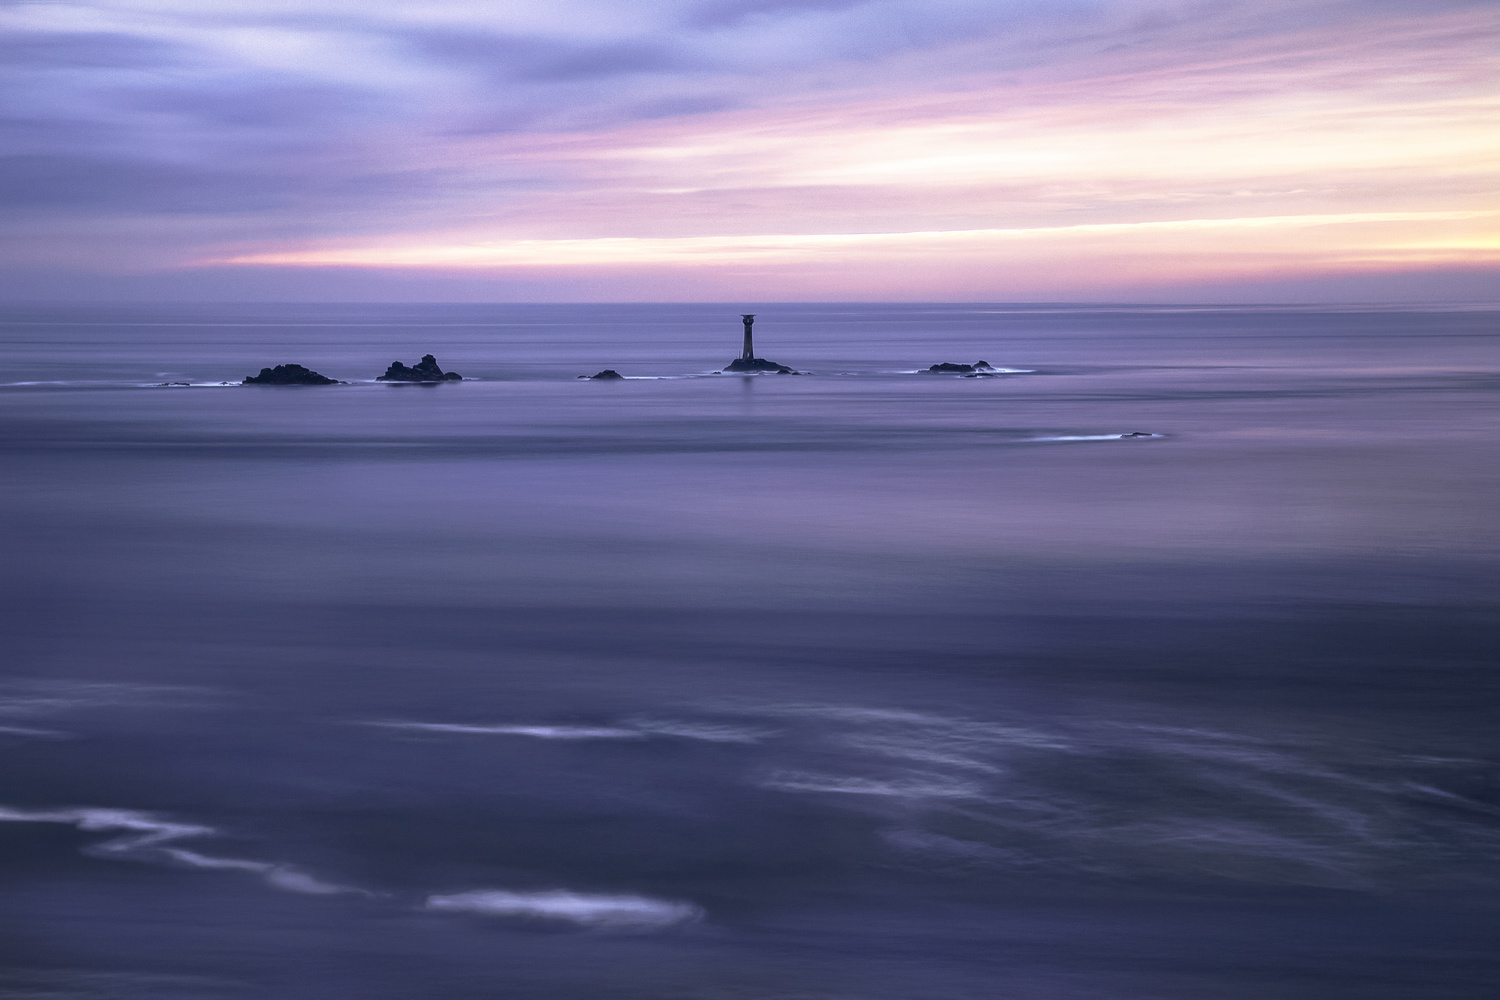 Days End in Land's End by Dora Artemiadi